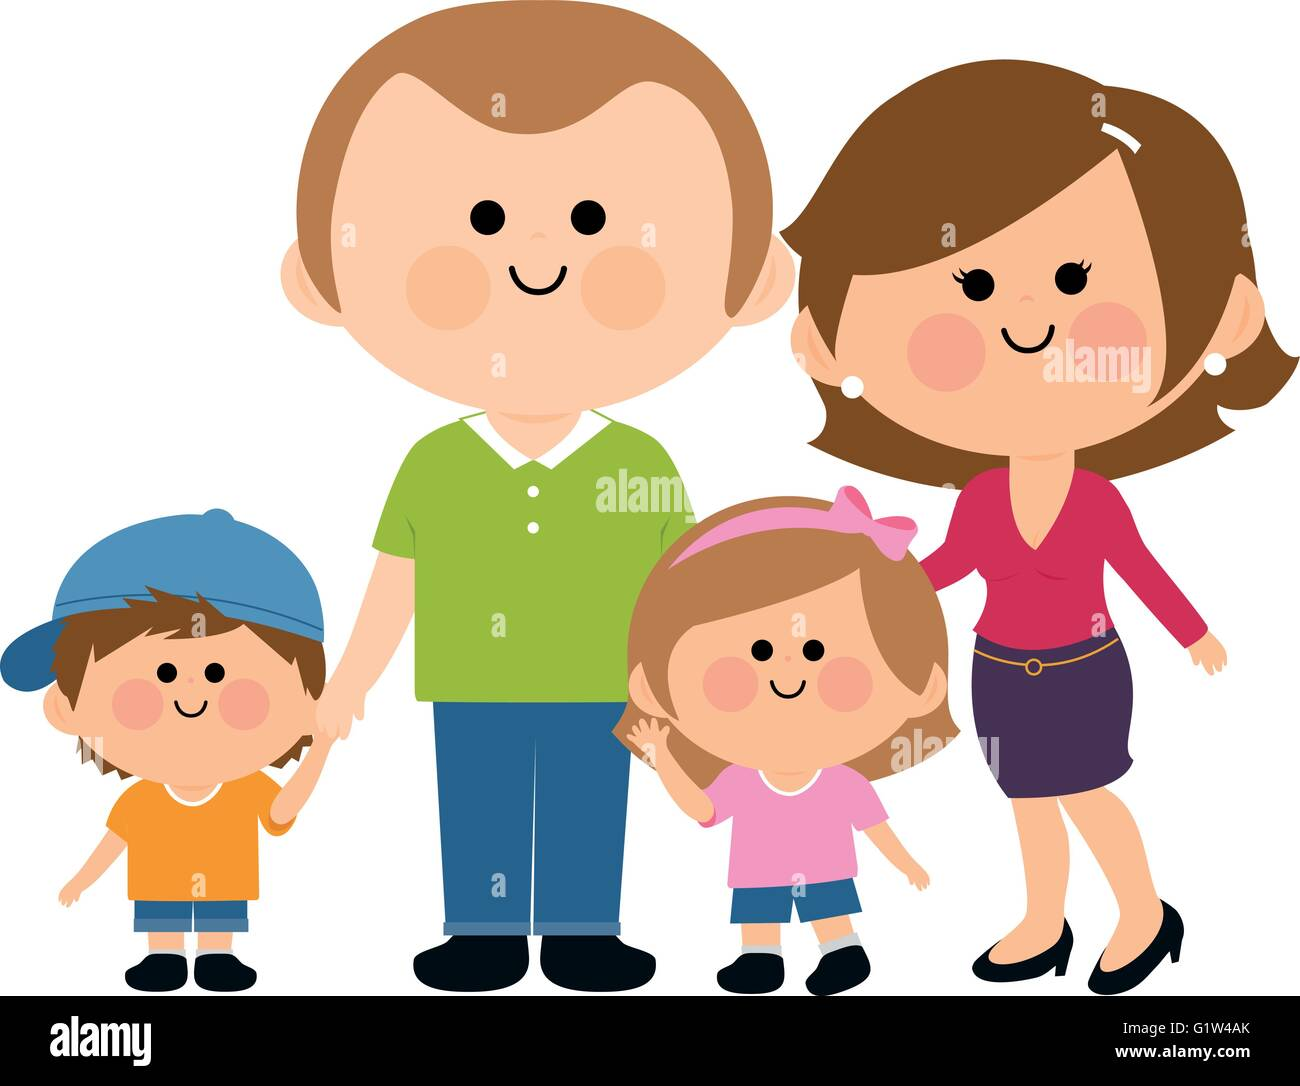 A happy family: Two parents and their children, a girl and a boy. - Stock Vector